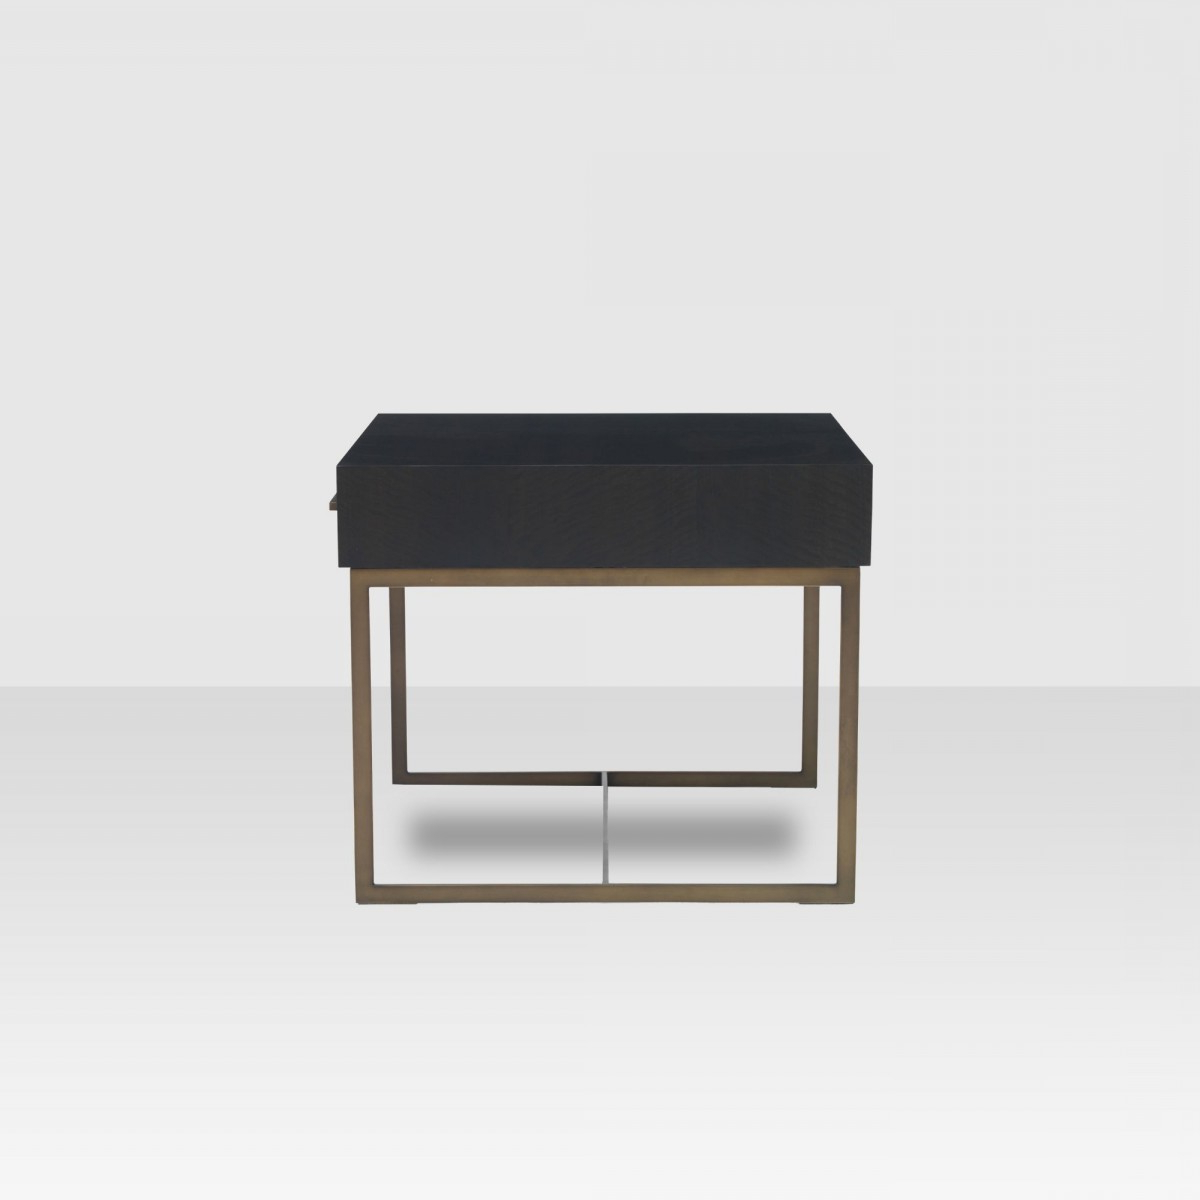 Allure Nesting Cocktail Tables – Elte With Regard To Well Known Allure Cocktail Tables (View 5 of 20)